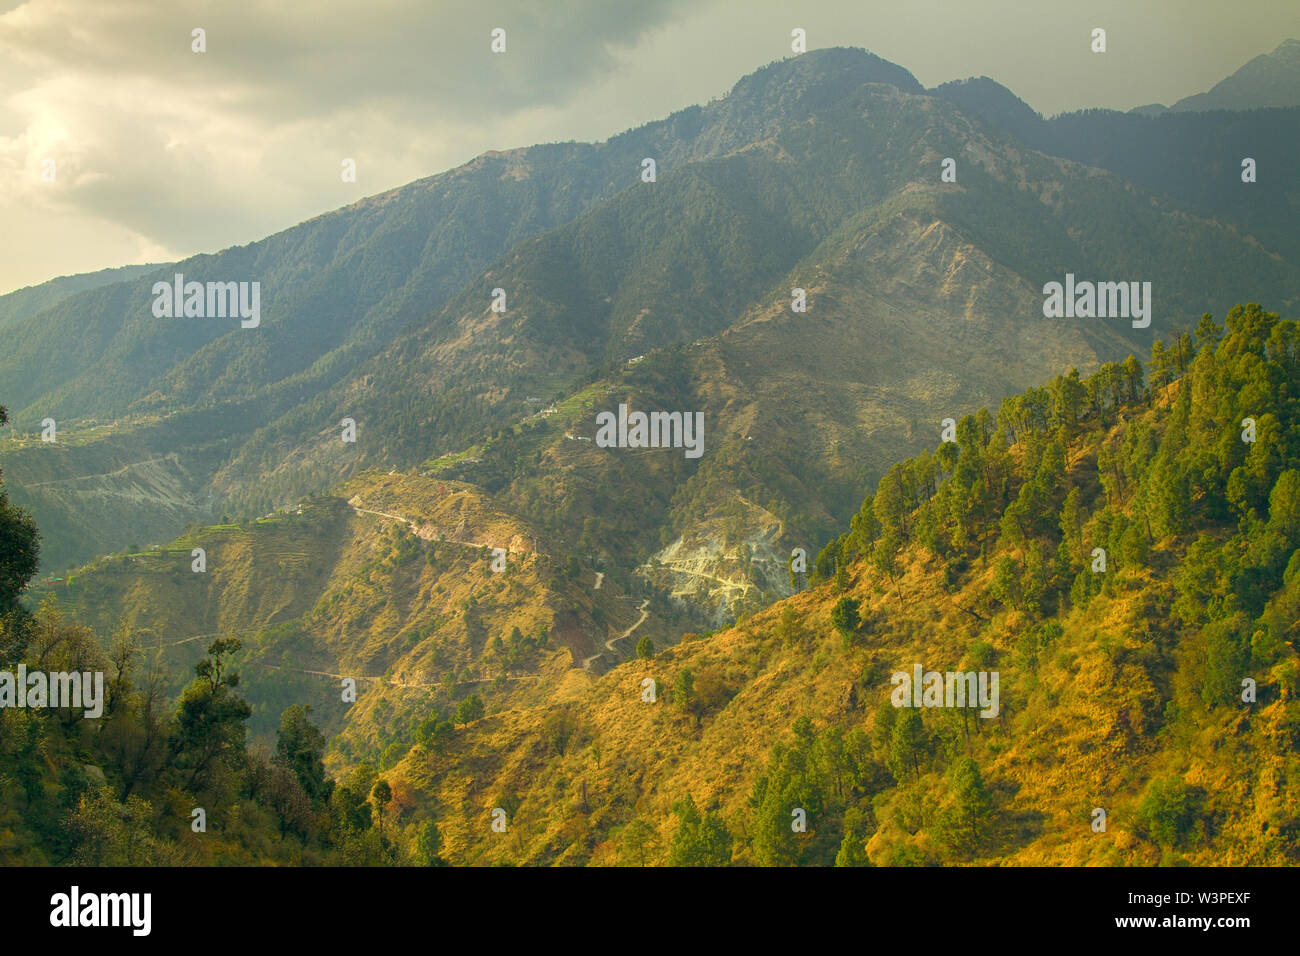 Evergreen mountain forests (rainforest) of the Pre-Himalayas (Sivalik, Shiva Mountains). Area of valley of Parvati river. Young mountains, river in wi - Stock Image